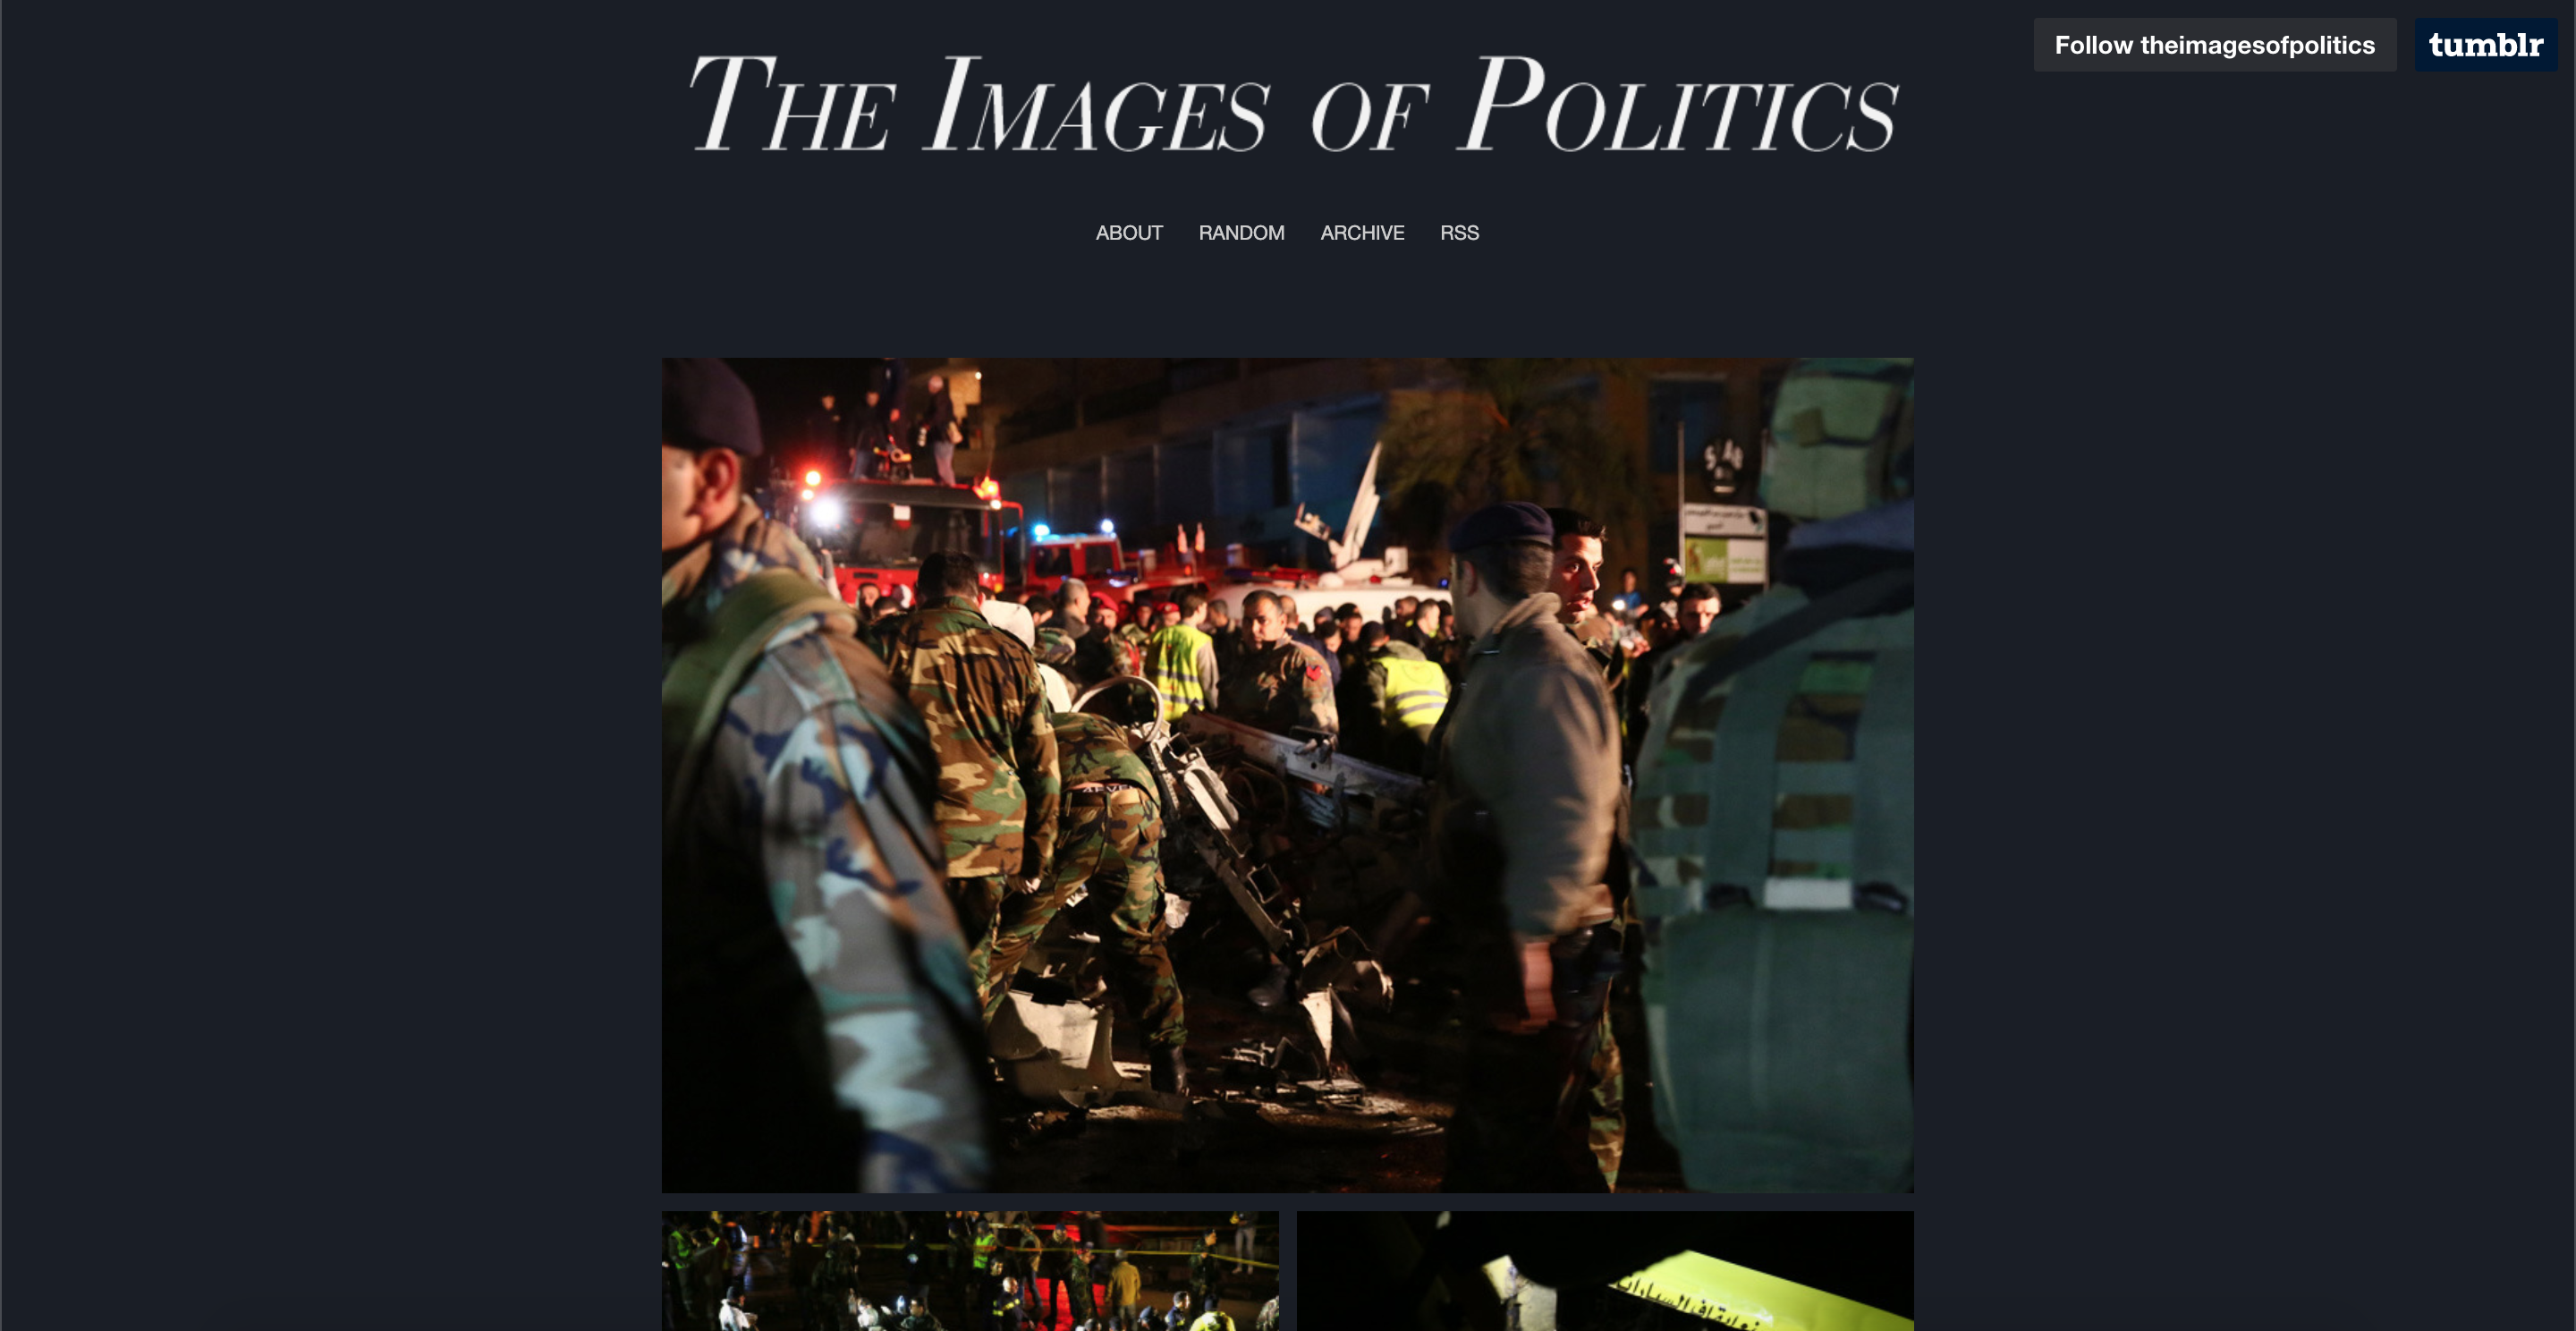 the images of politics page 1